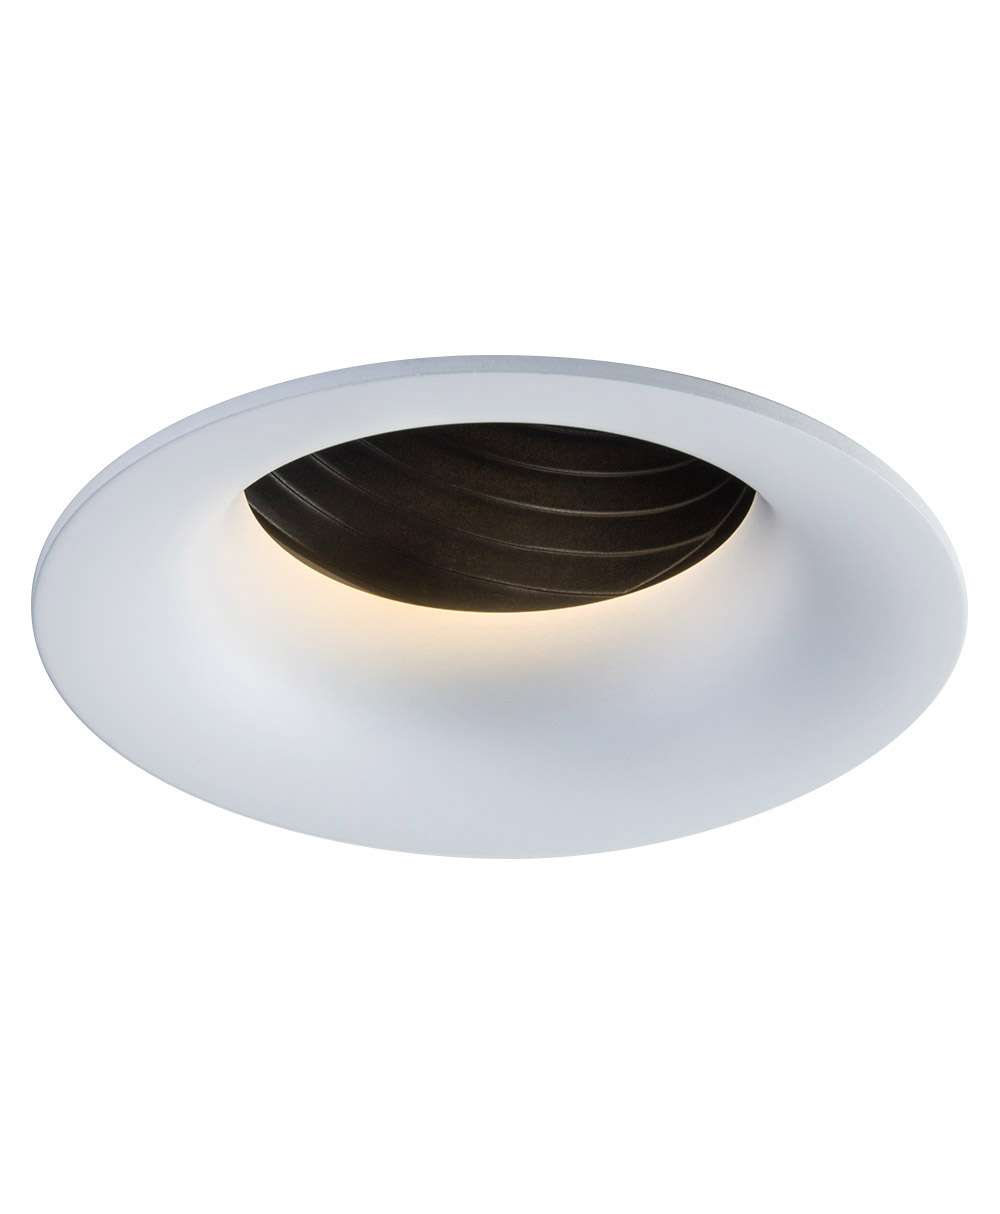 SIGMA 2 Round Adjustable LED Fixture with Stepped Baffle